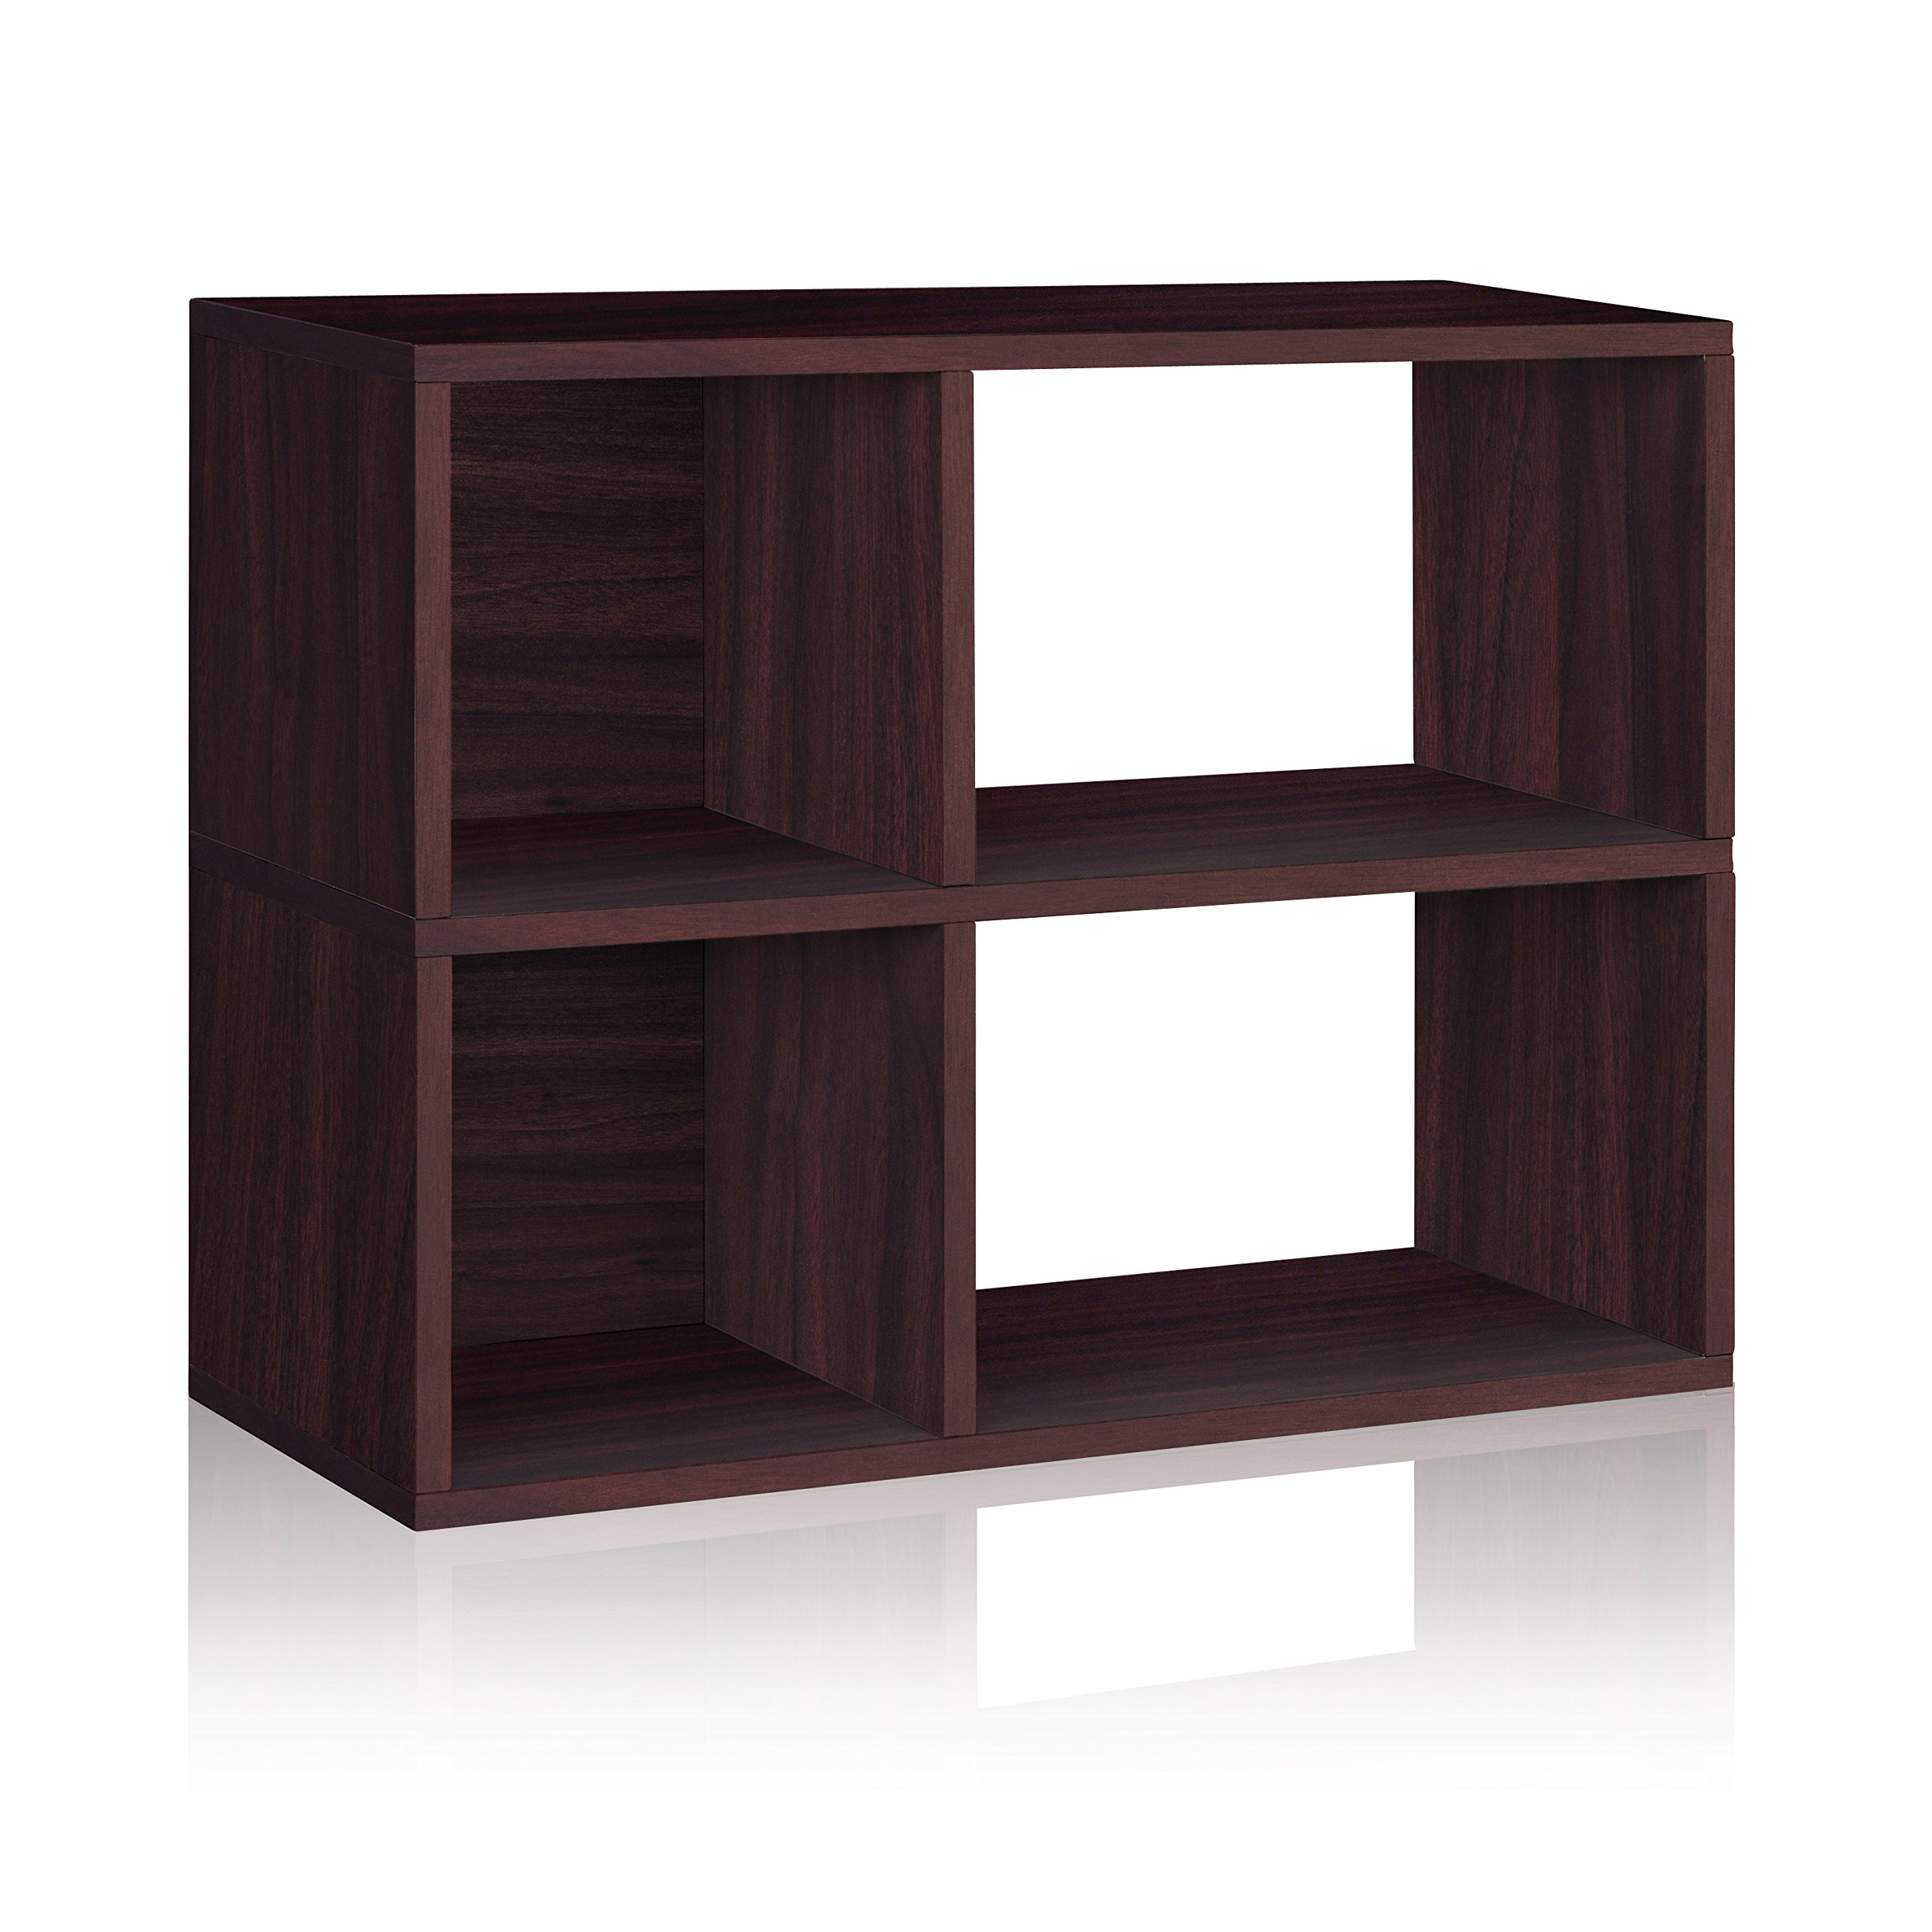 Way Basics Eco 2 Shelf Chelsea Bookcase and Cubby Storage, Espresso (made from sustainable non-toxic zBoard paperboard)